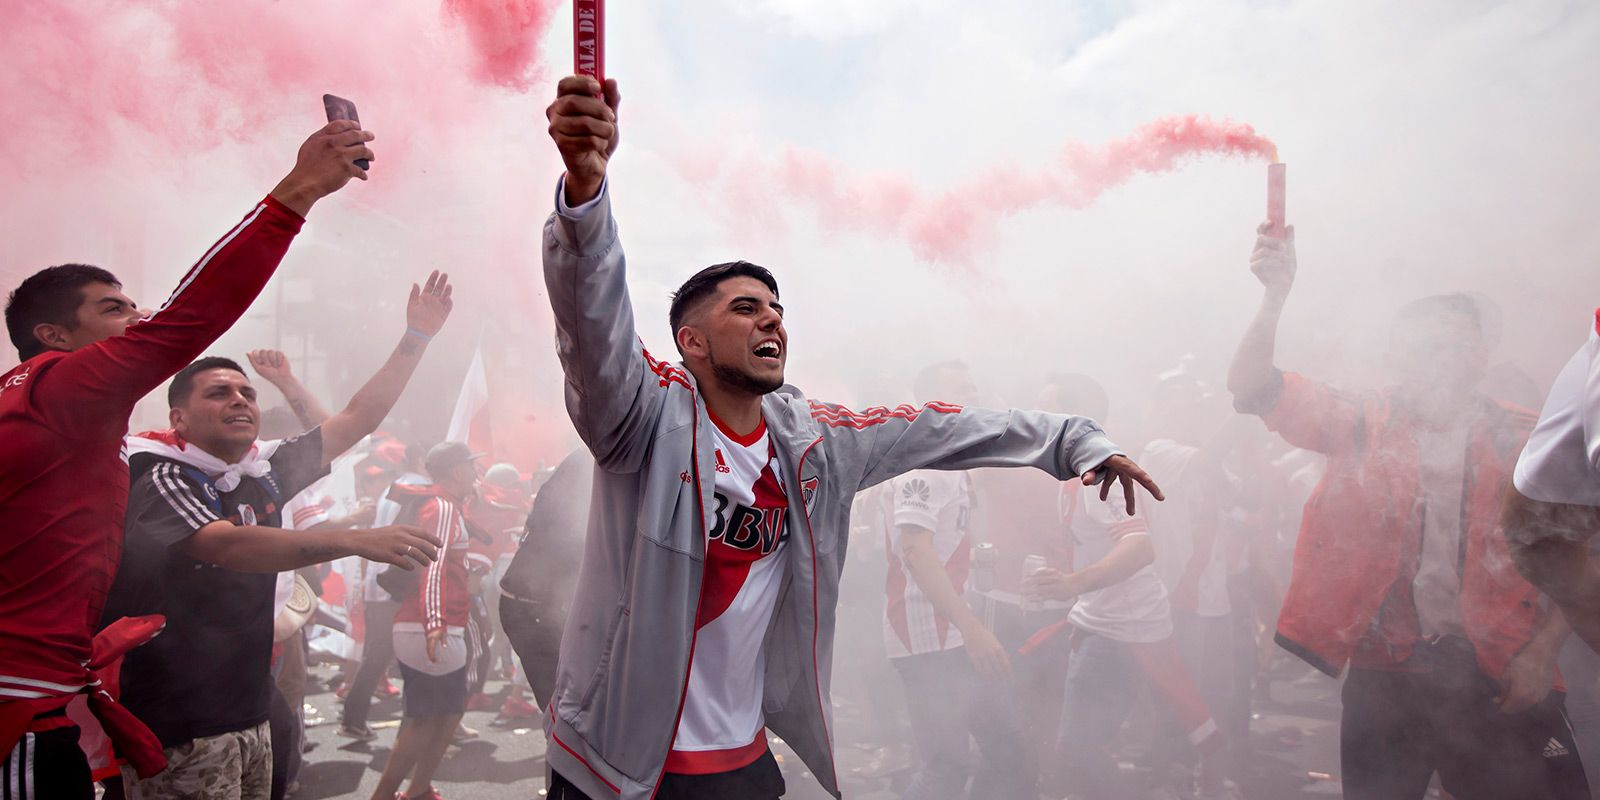 465b9e8ffd4 Boca Juniors vs. River Plate the greatest game never played